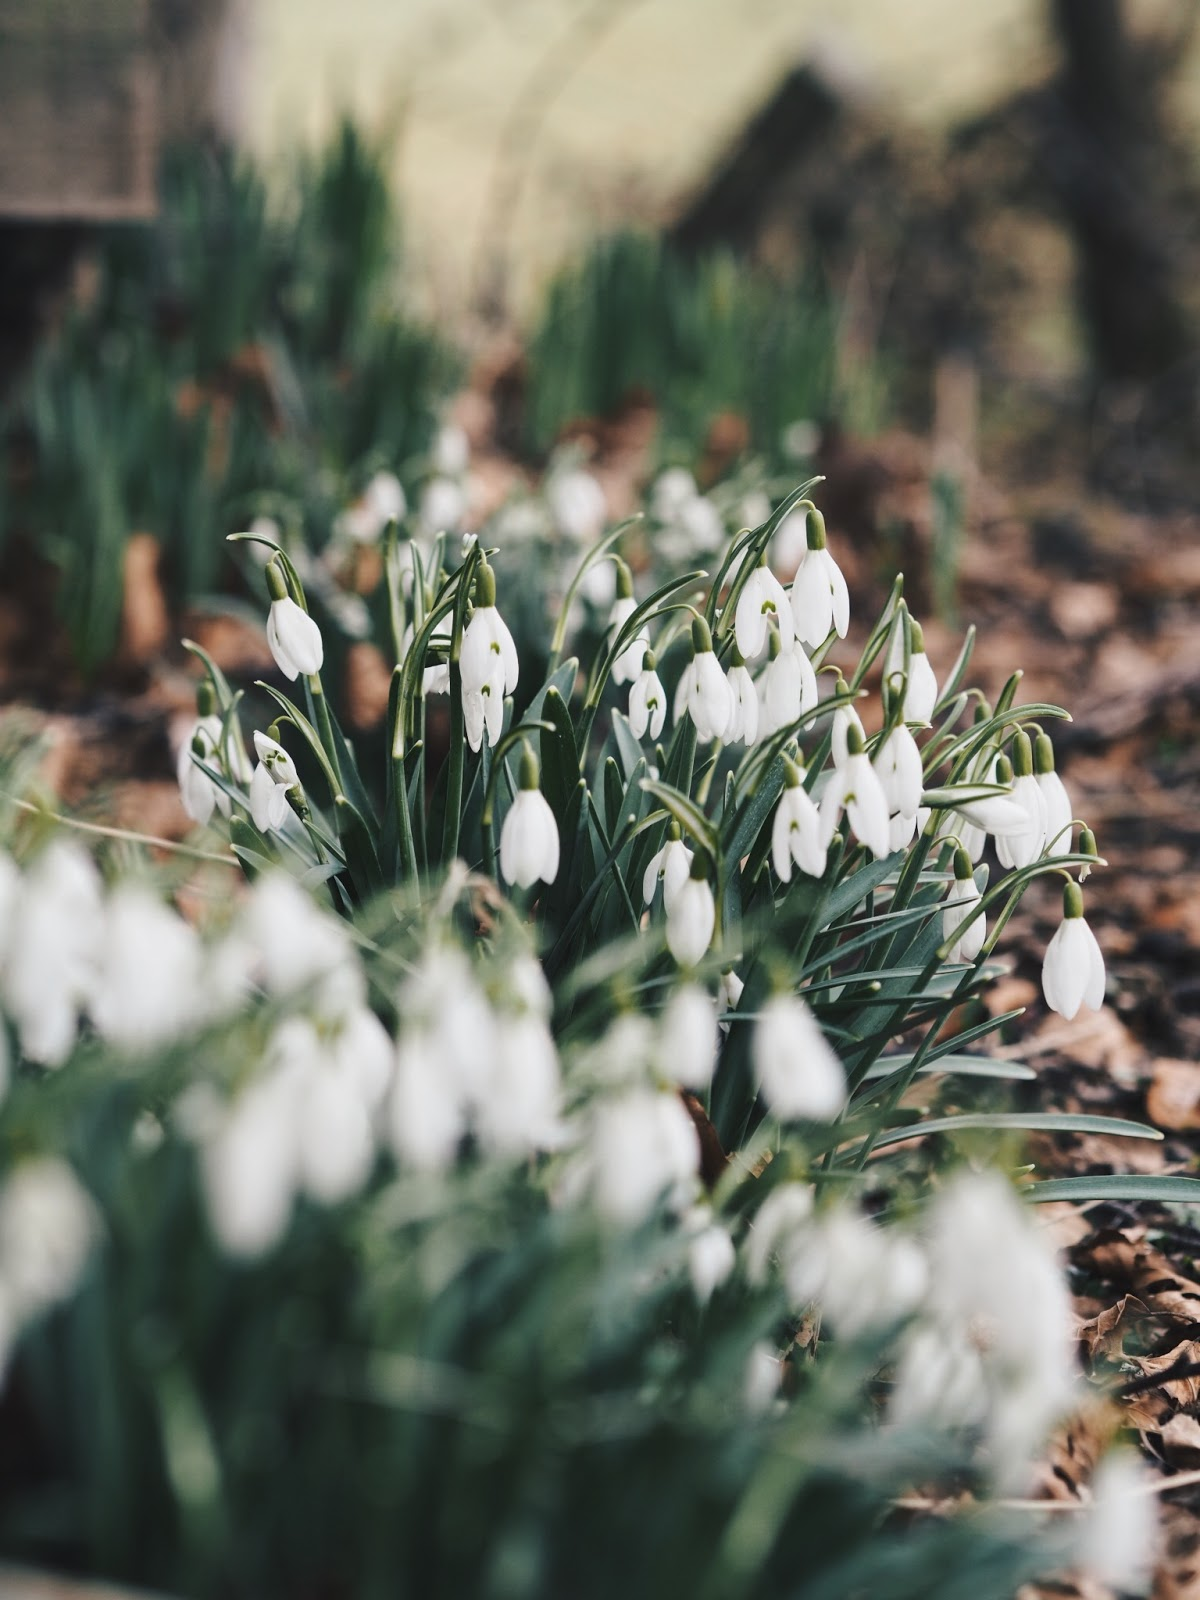 snowdrops blogging comparison